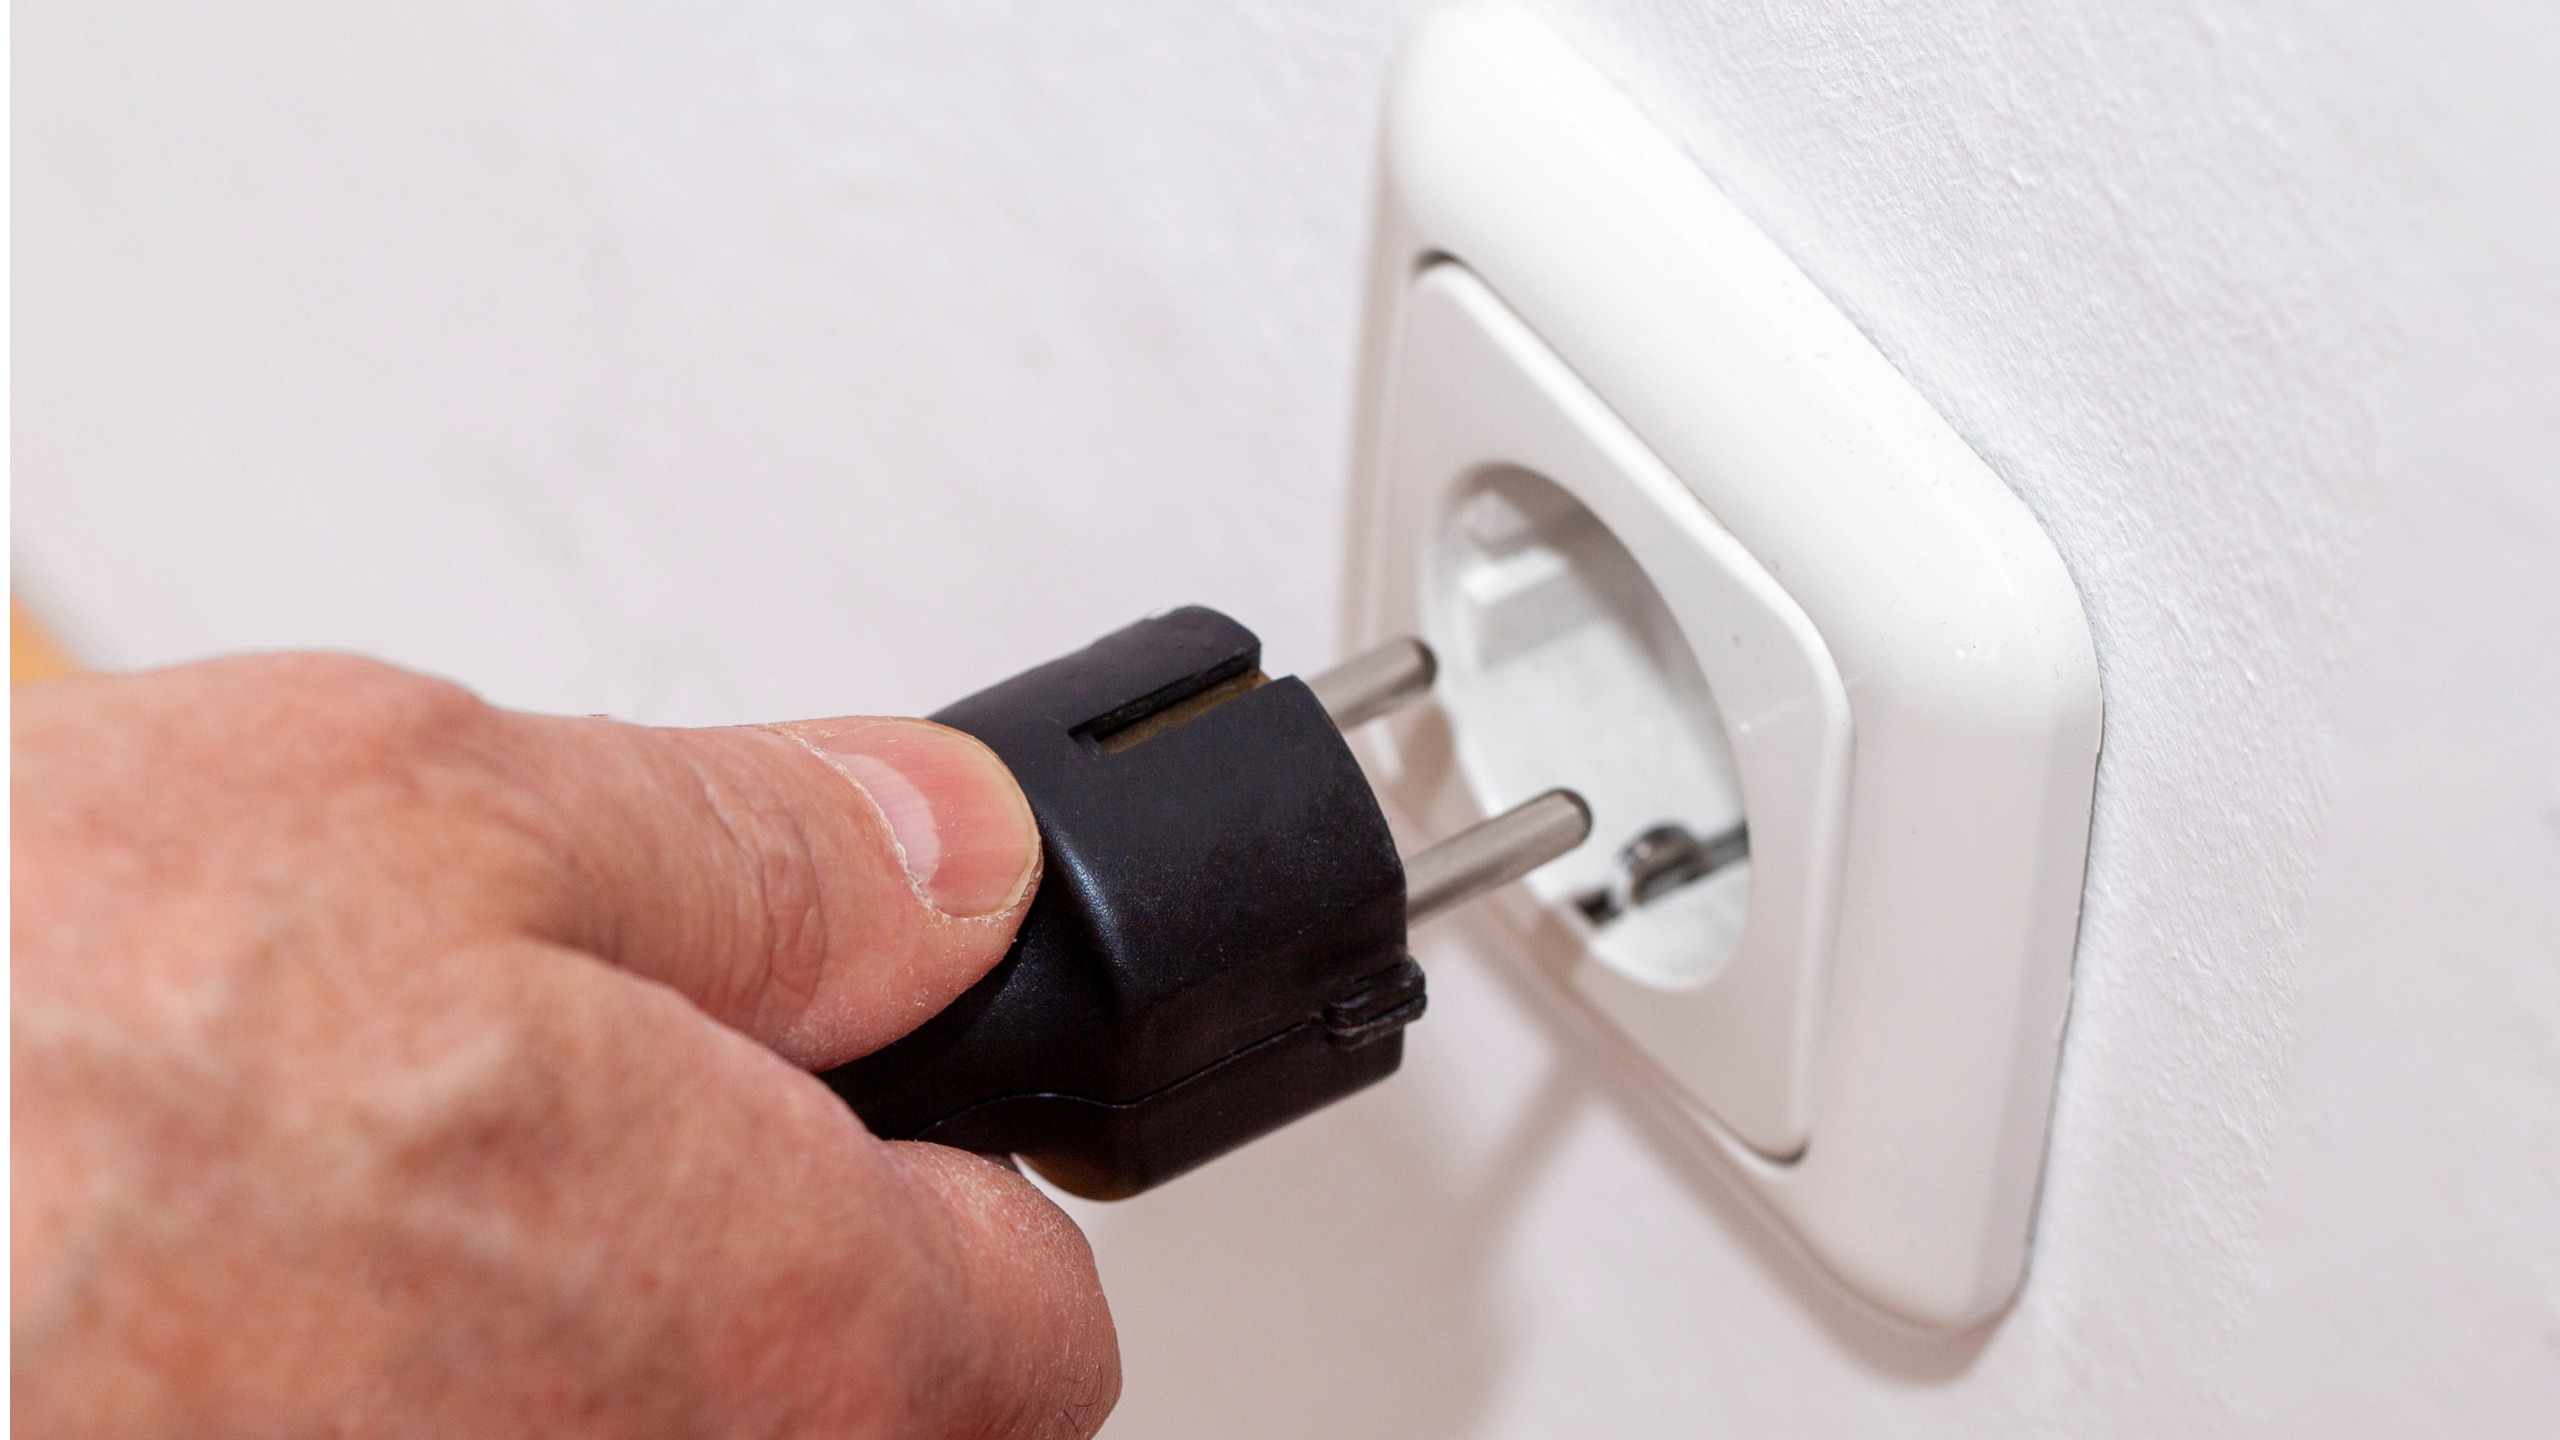 How To Install Power Strip On Wall – DIY Guide